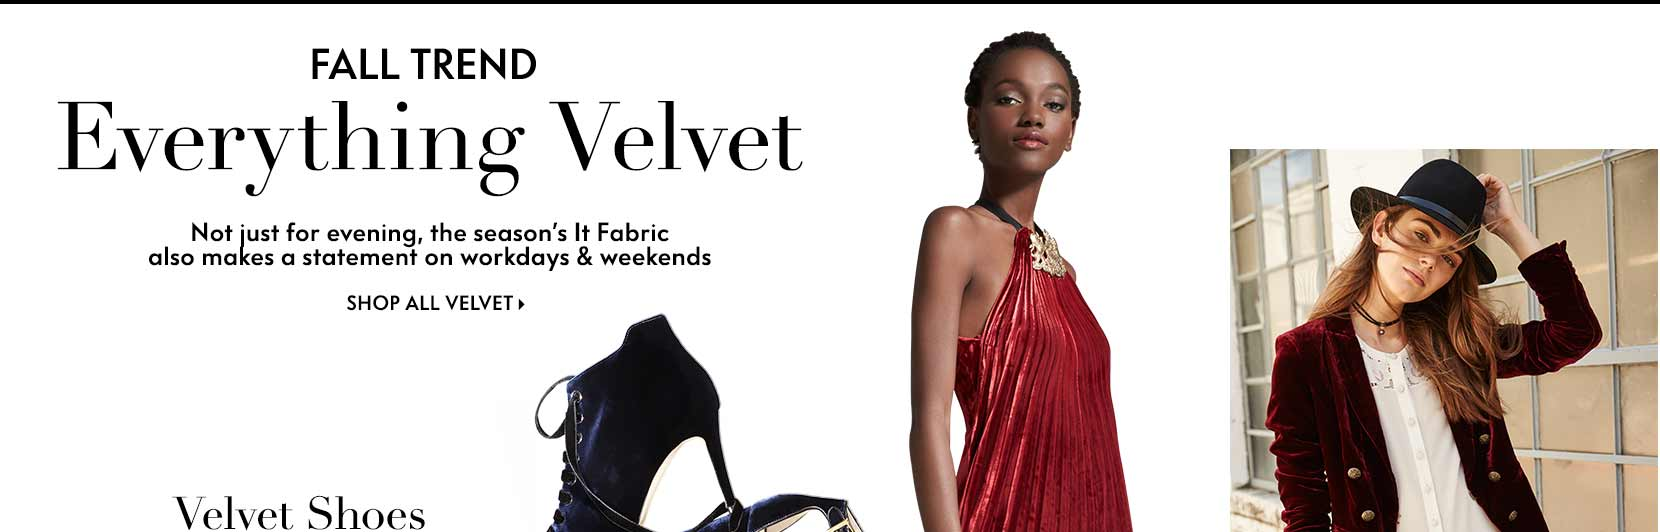 Fall trend everything velvet not just for evening, the season's IT Fabric also makes a statement on workdays & weekends